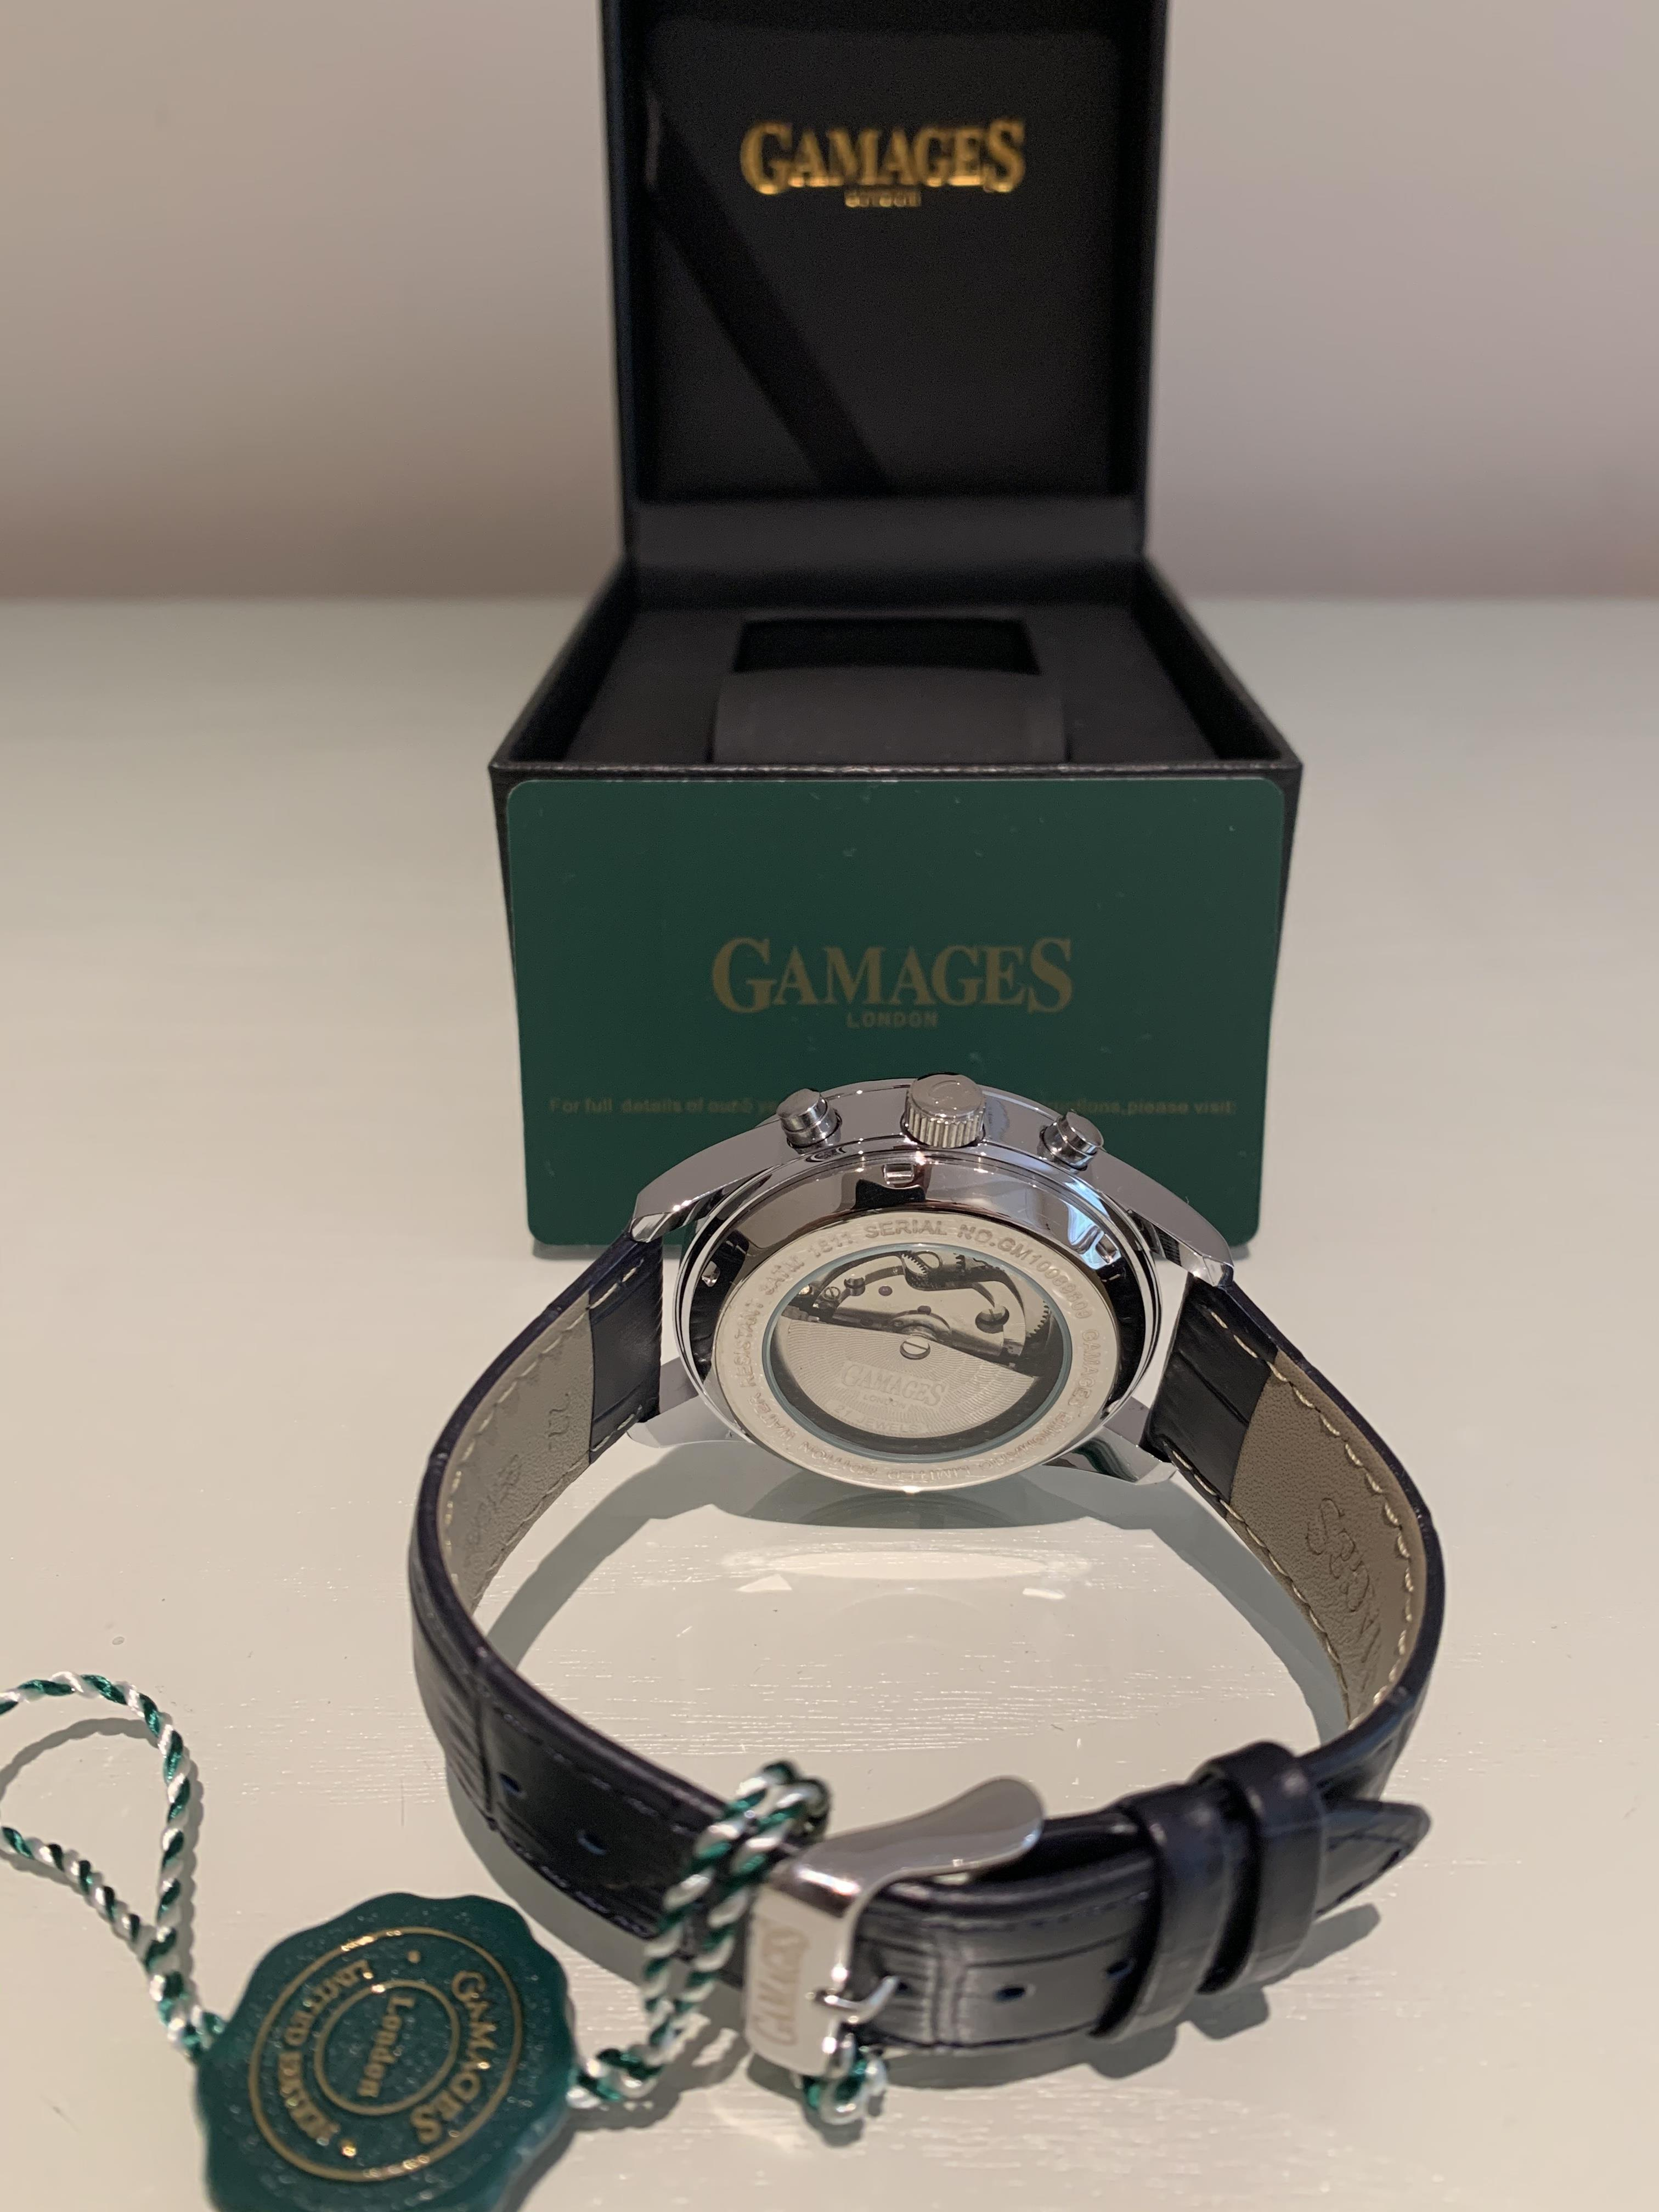 Limited Edition Hand Assembled Gamages Enigmatic Automatic Steel – 5 Year Warranty & Free Delivery - Image 3 of 5